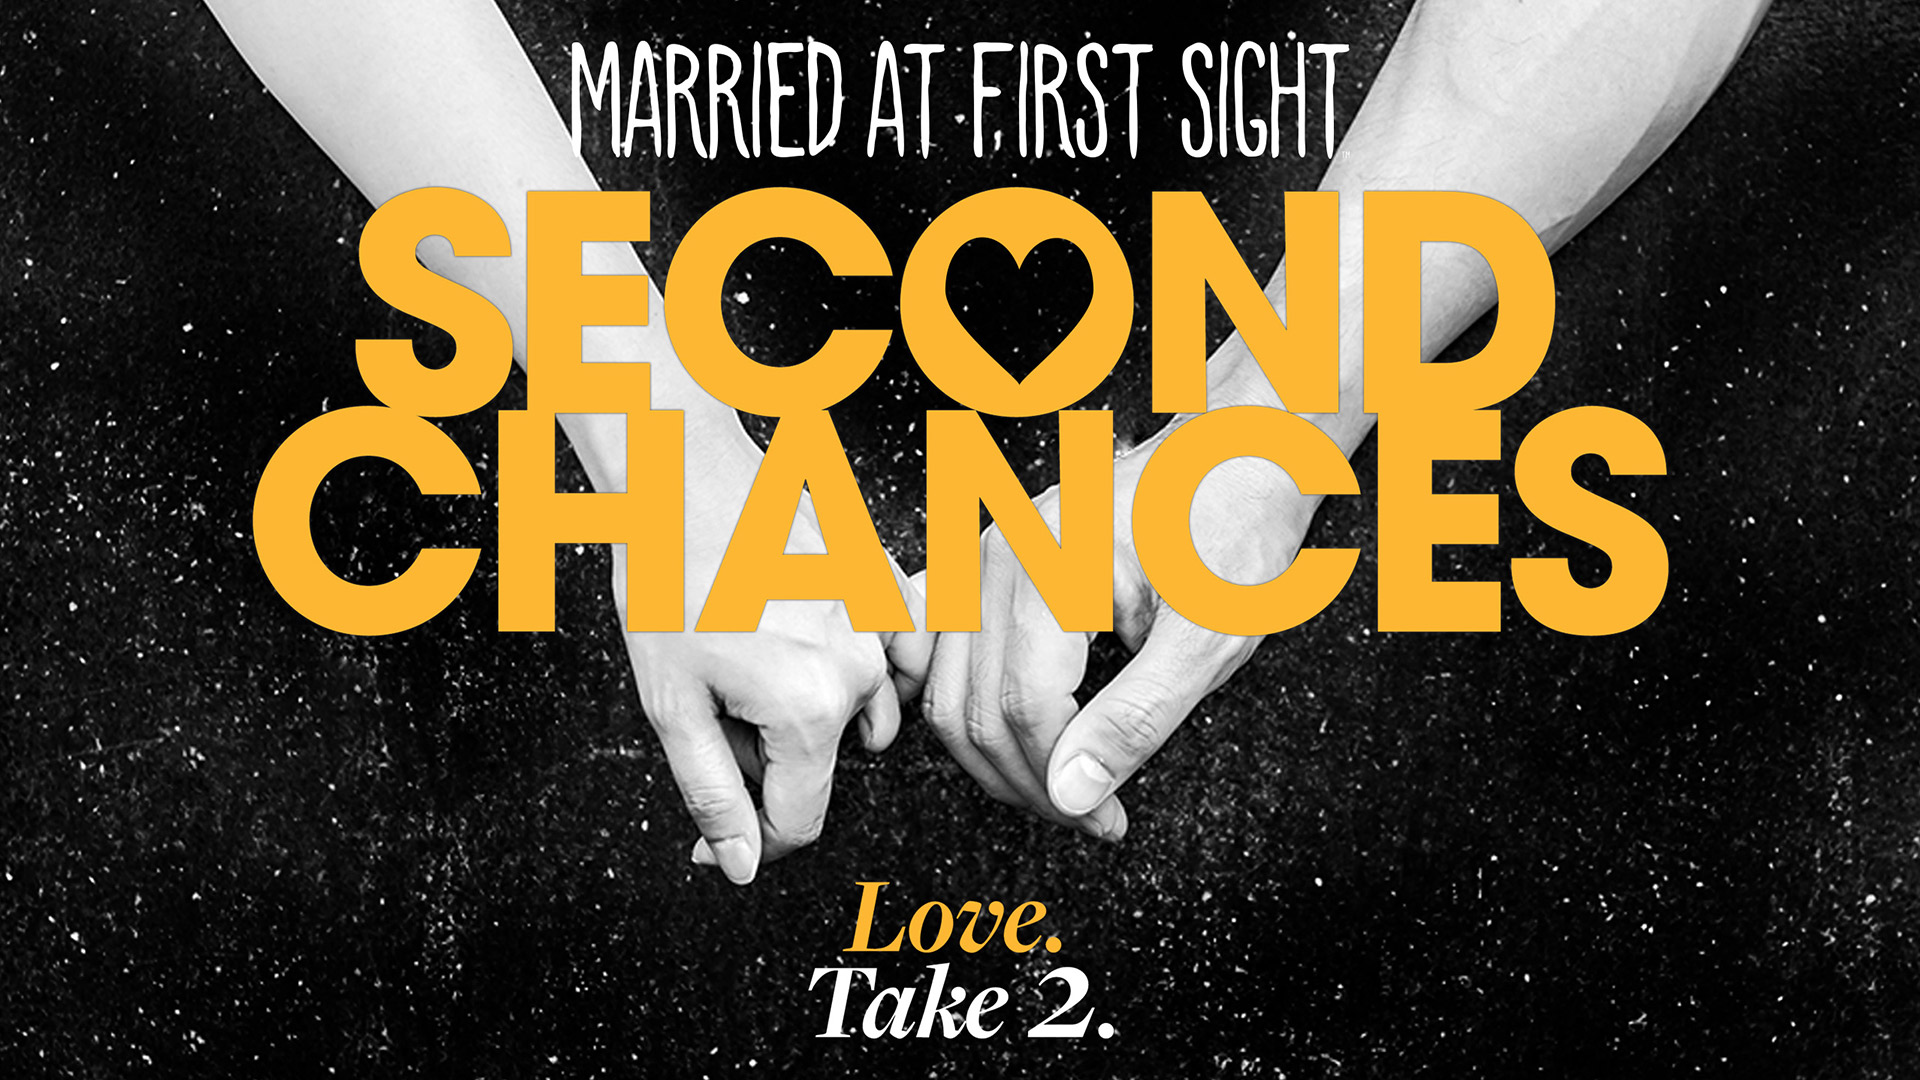 Married at First Sight: Second Chances Season 1